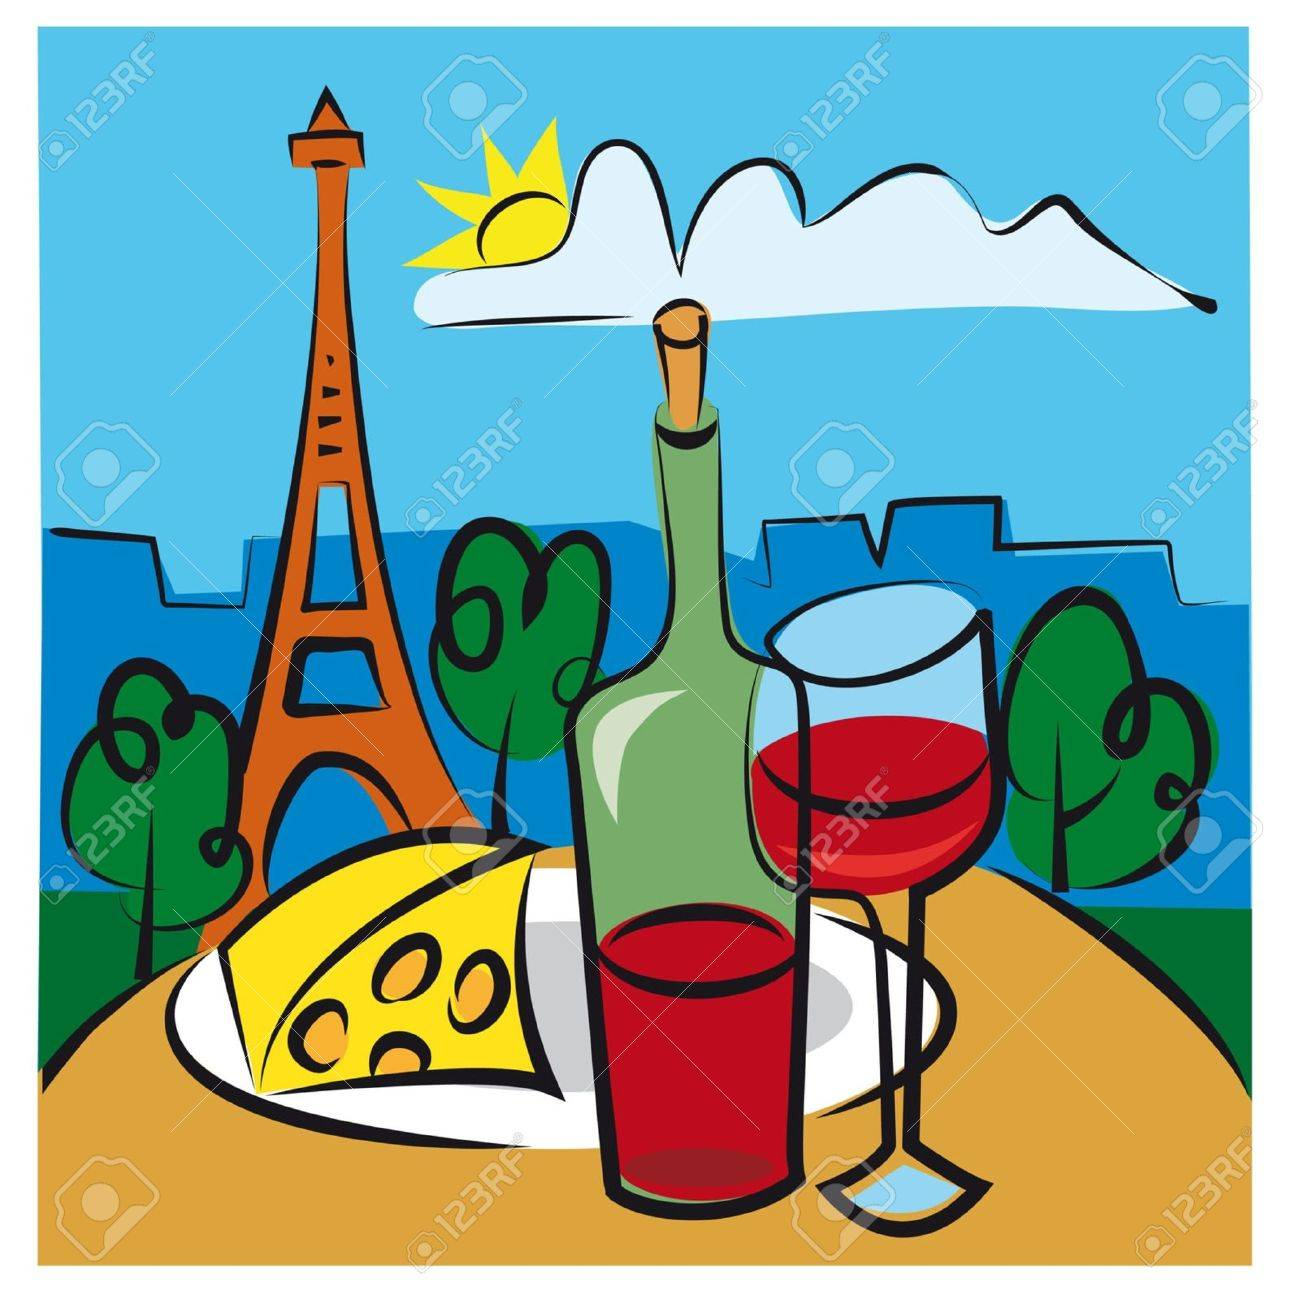 french wine royalty free cliparts vectors and stock illustration rh 123rf com Ladies Wine Clip Art Wine Drop Clip Art